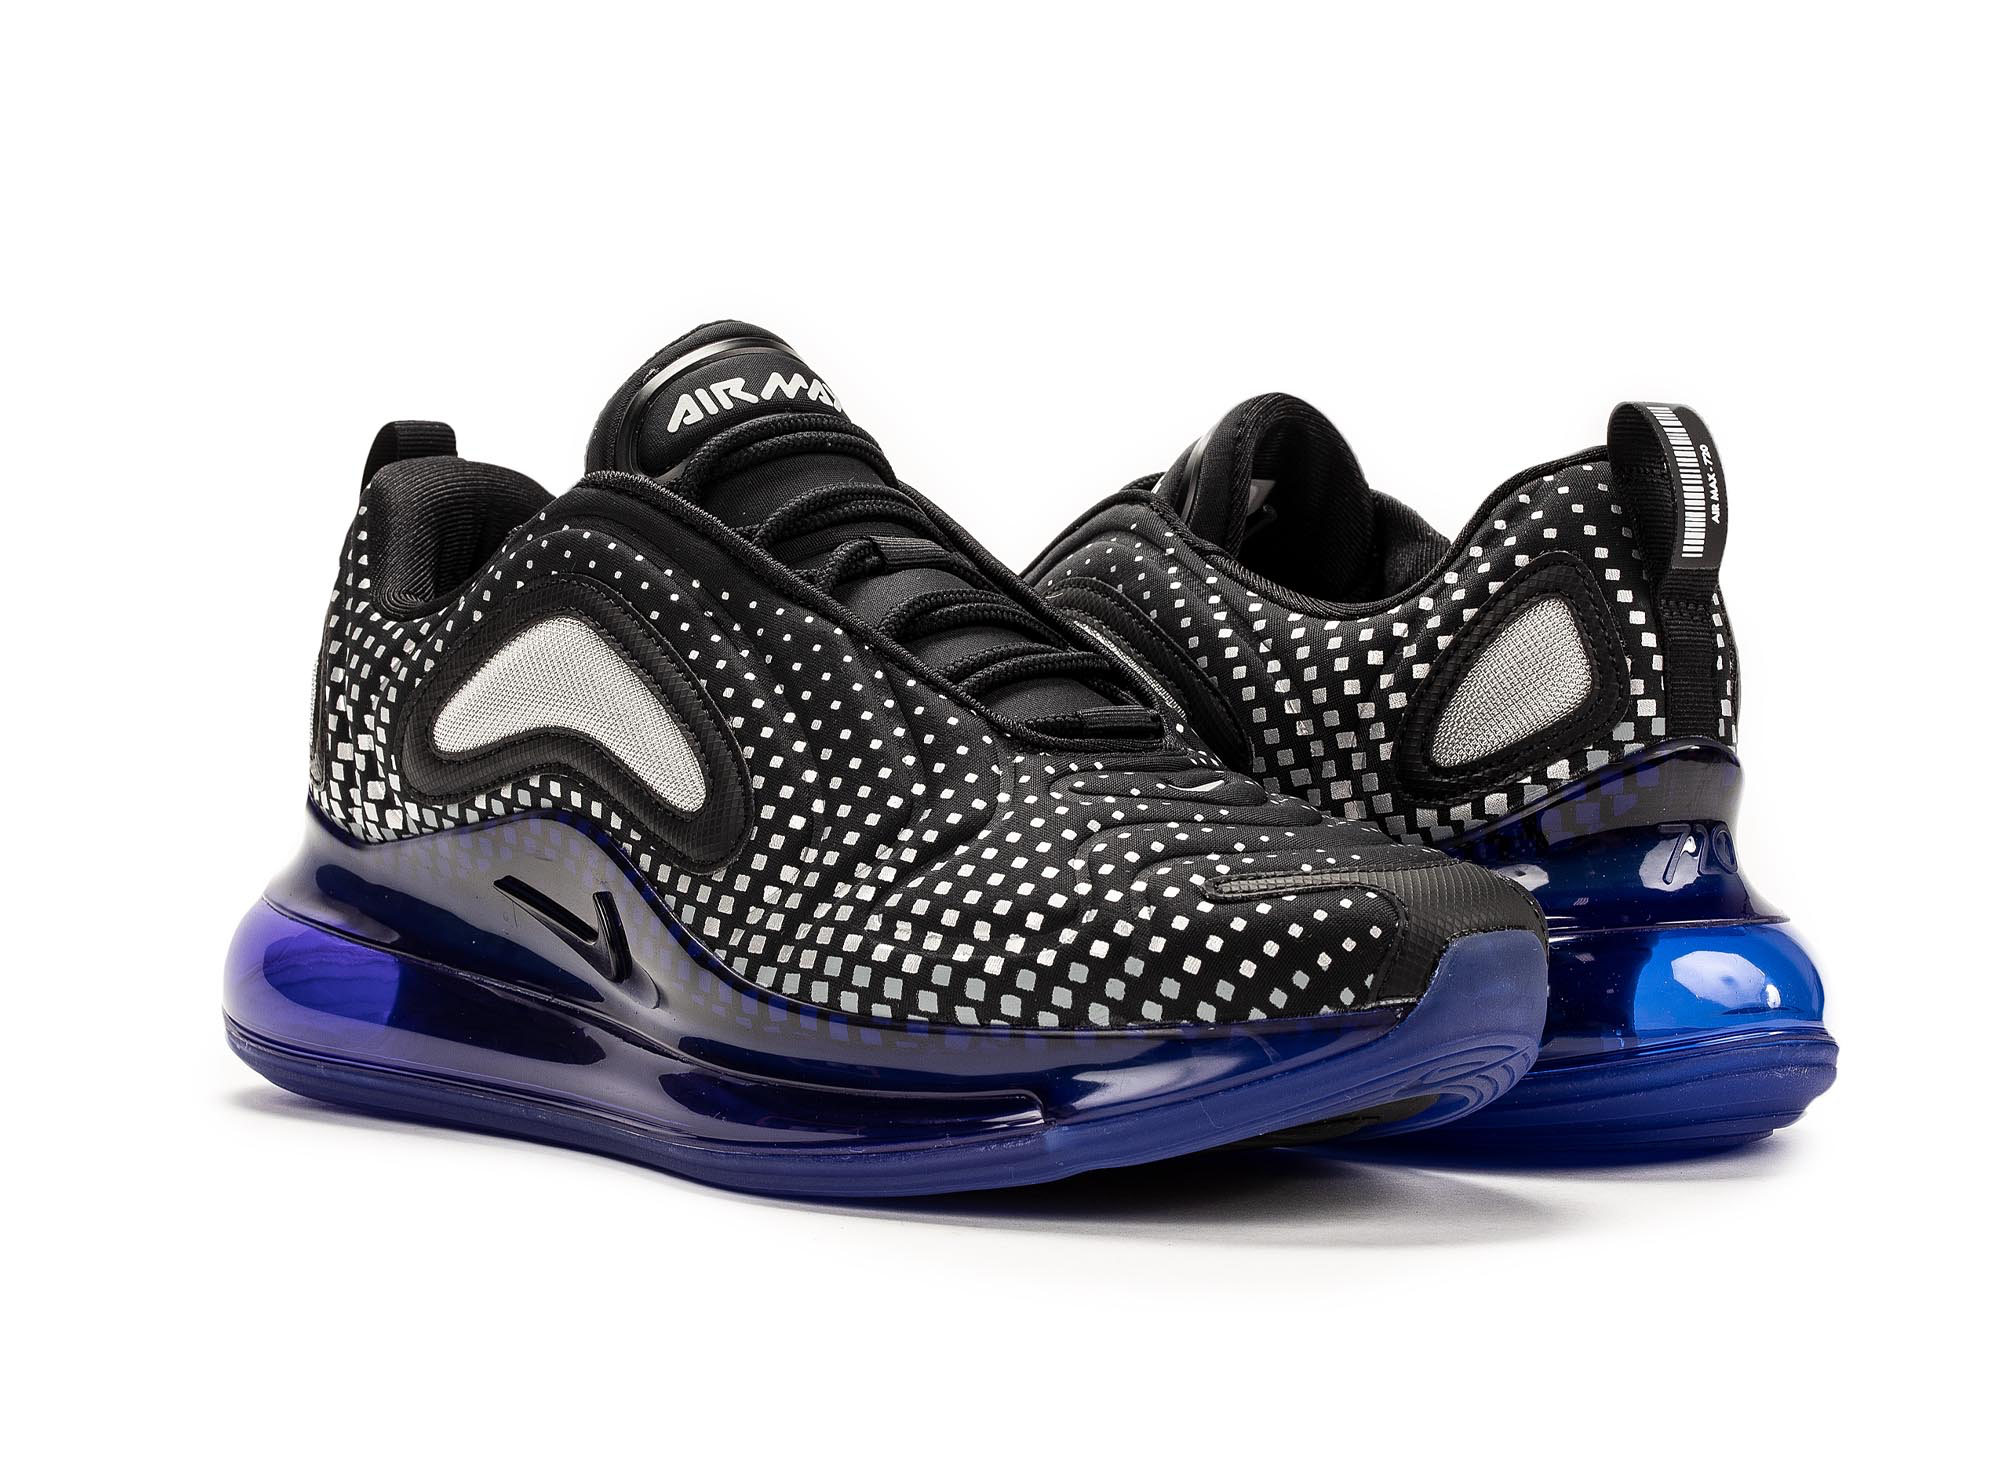 Nike Air Max Black Reflect Collection Sneaker Freaker